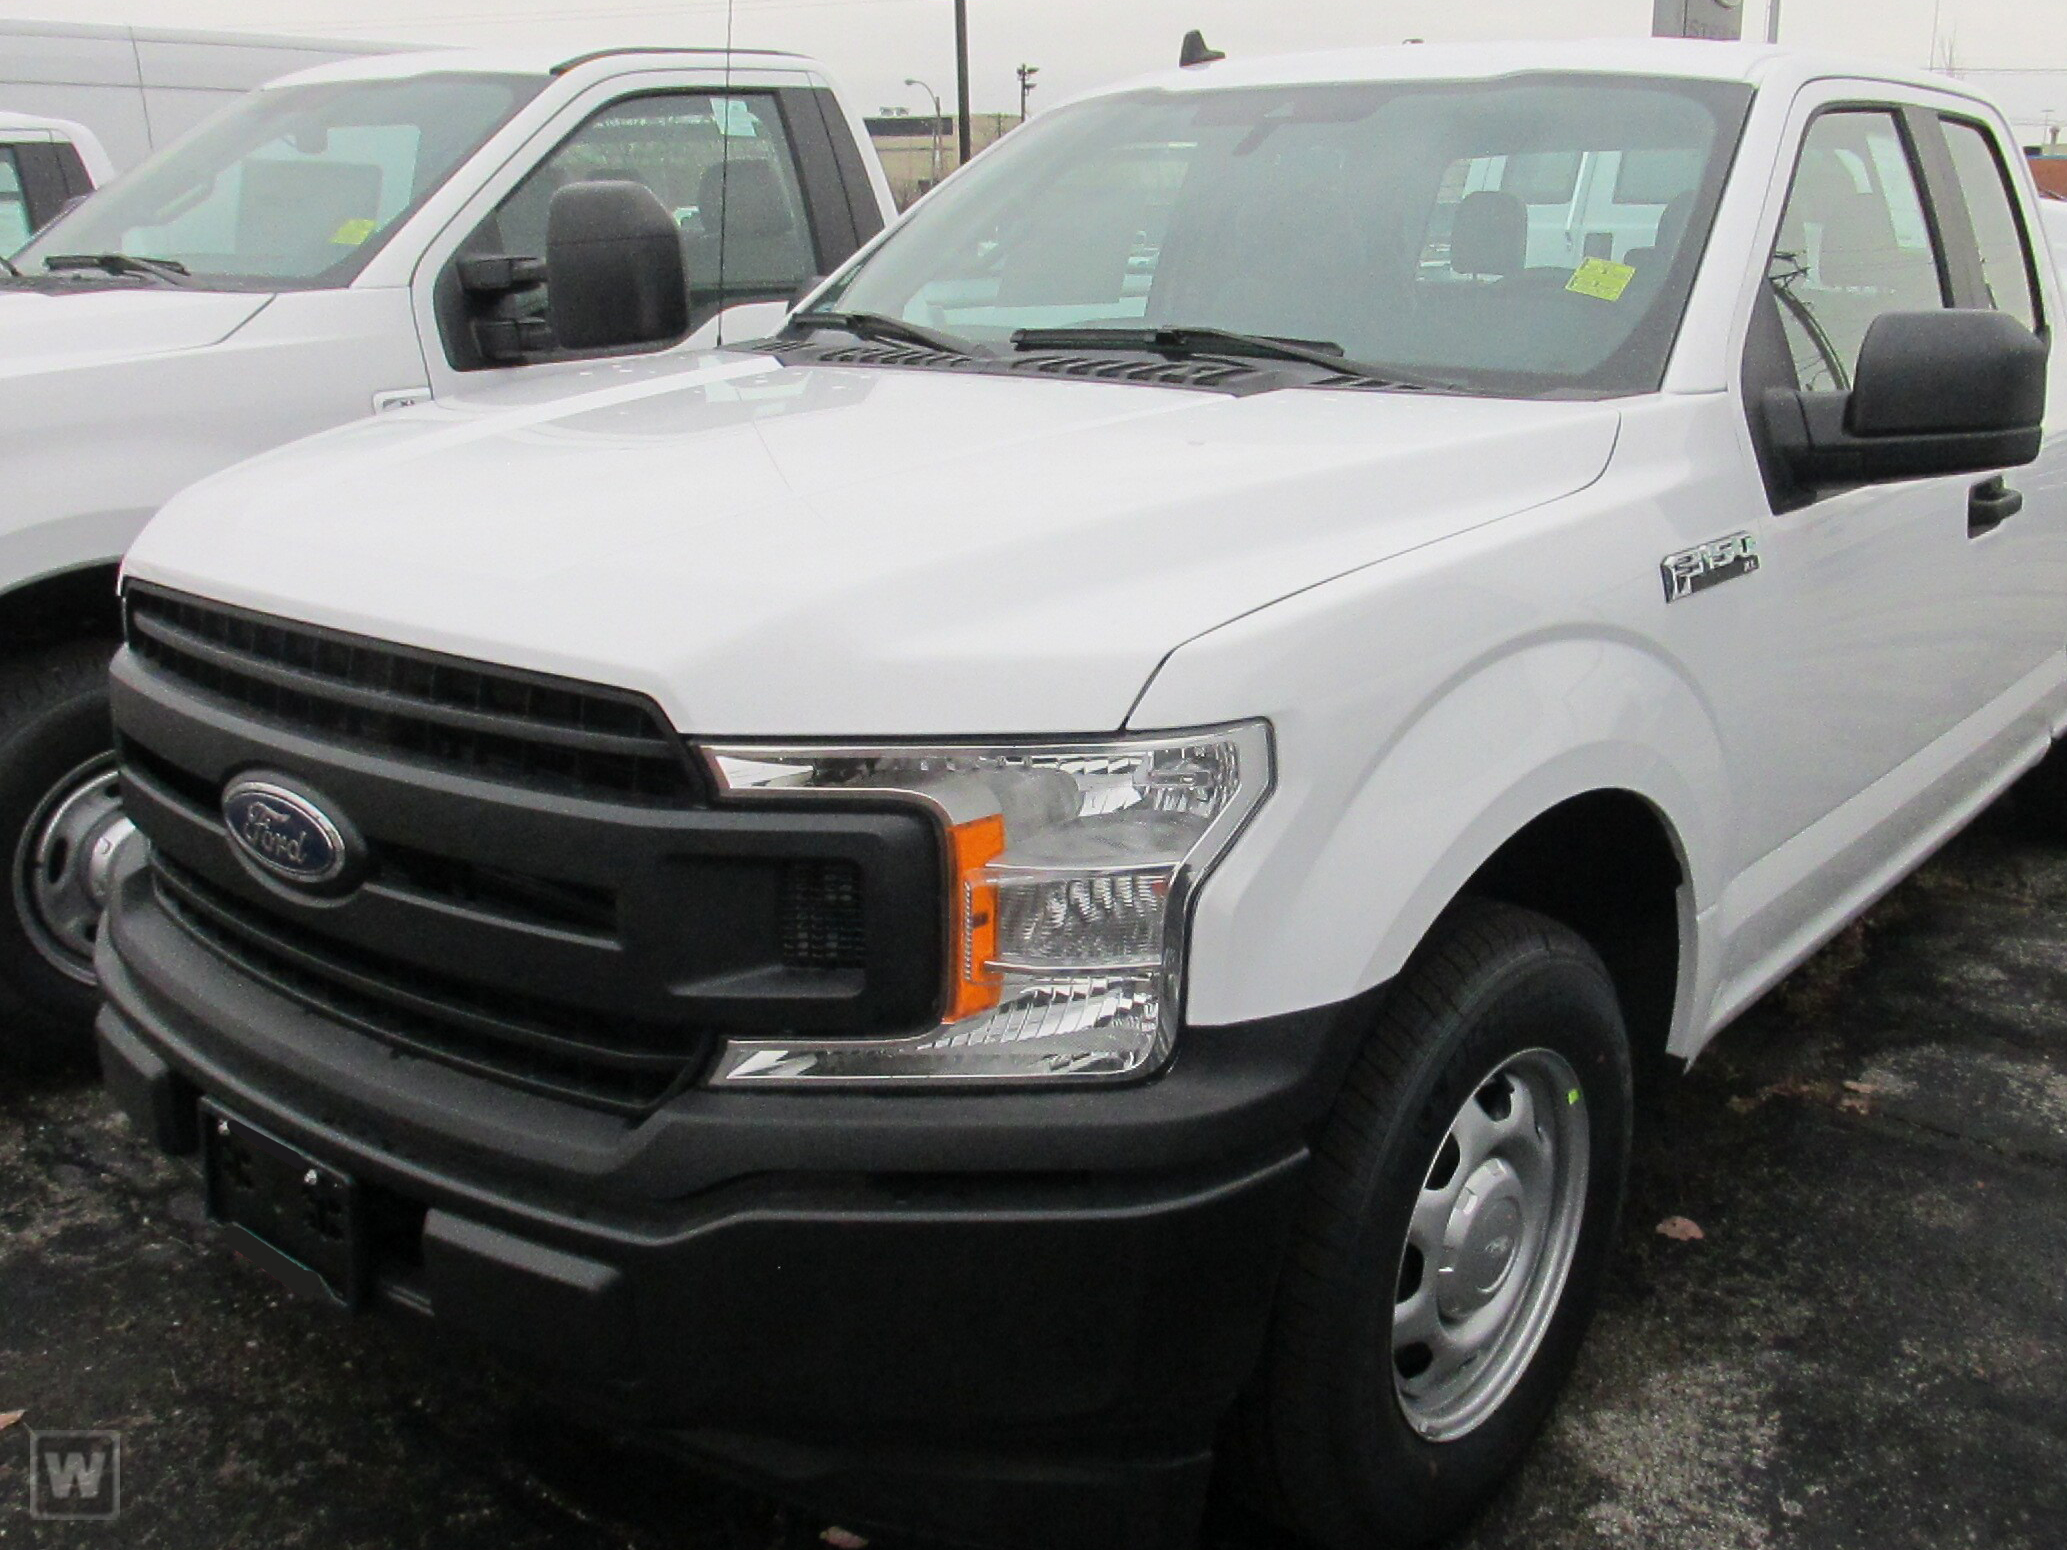 2020 F-150 Super Cab 4x2, Pickup #FT10472 - photo 1